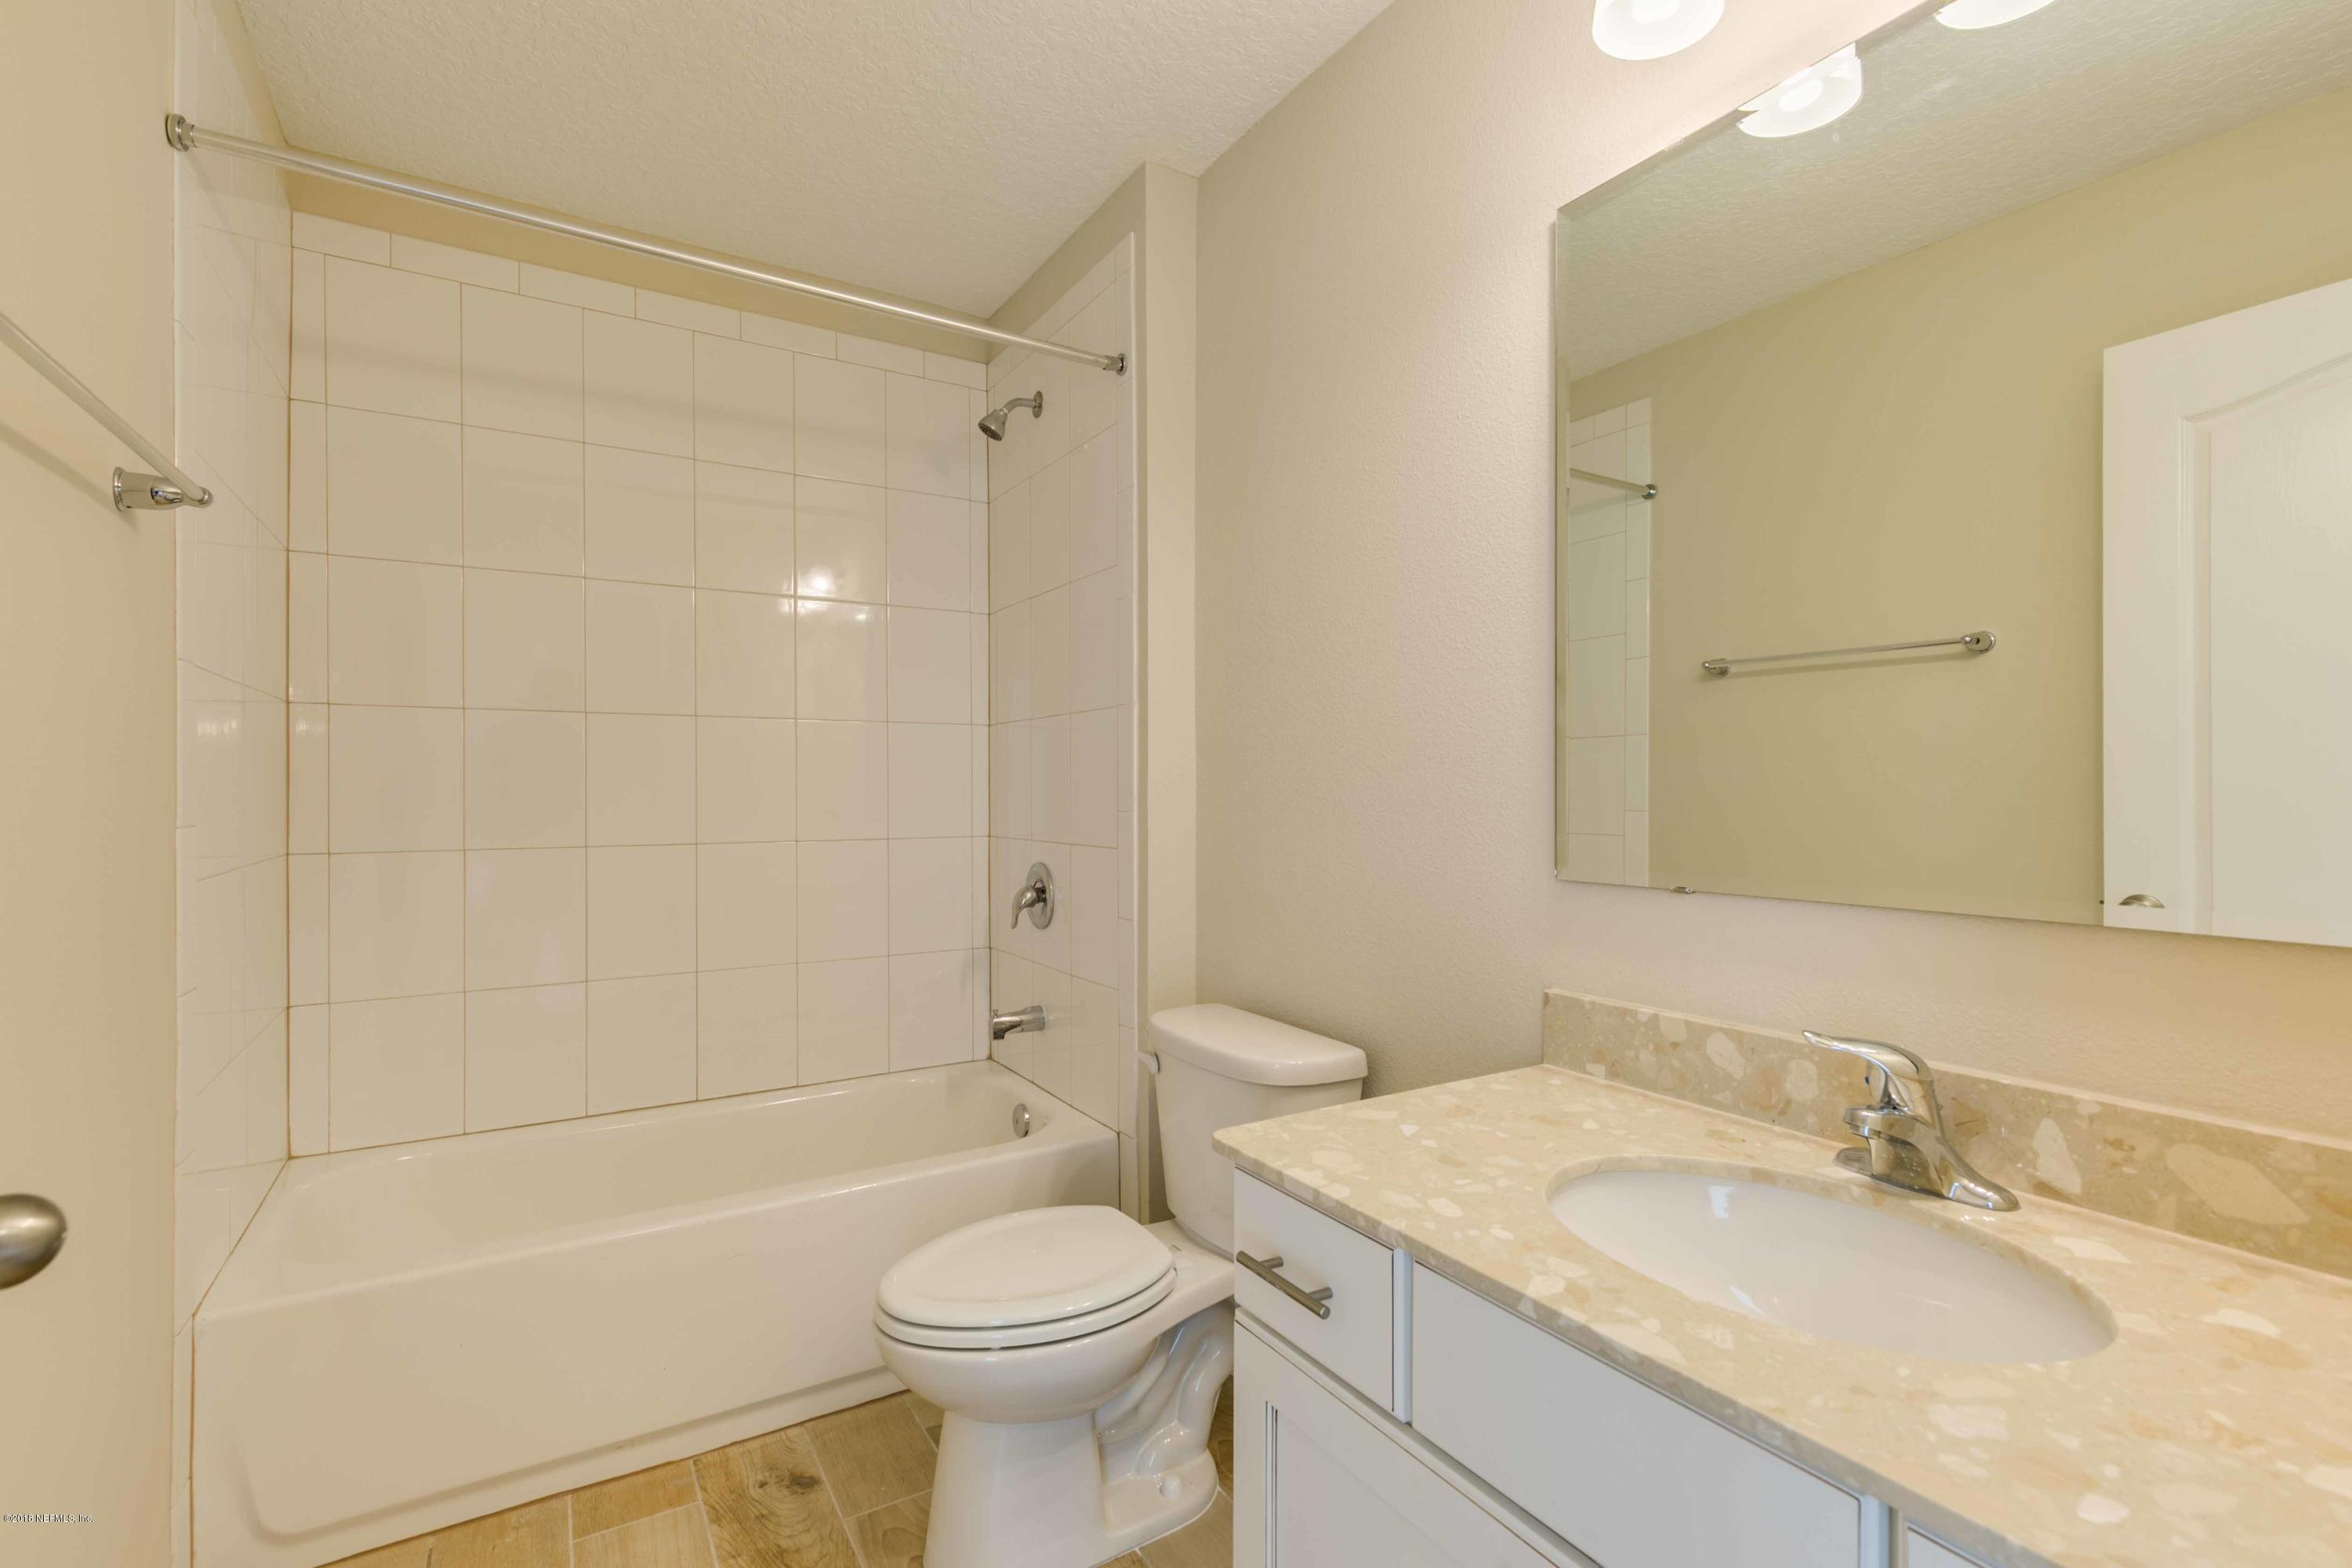 212 GRAND RESERVE, BUNNELL, FLORIDA 32110, 4 Bedrooms Bedrooms, ,3 BathroomsBathrooms,Residential - single family,For sale,GRAND RESERVE,906372